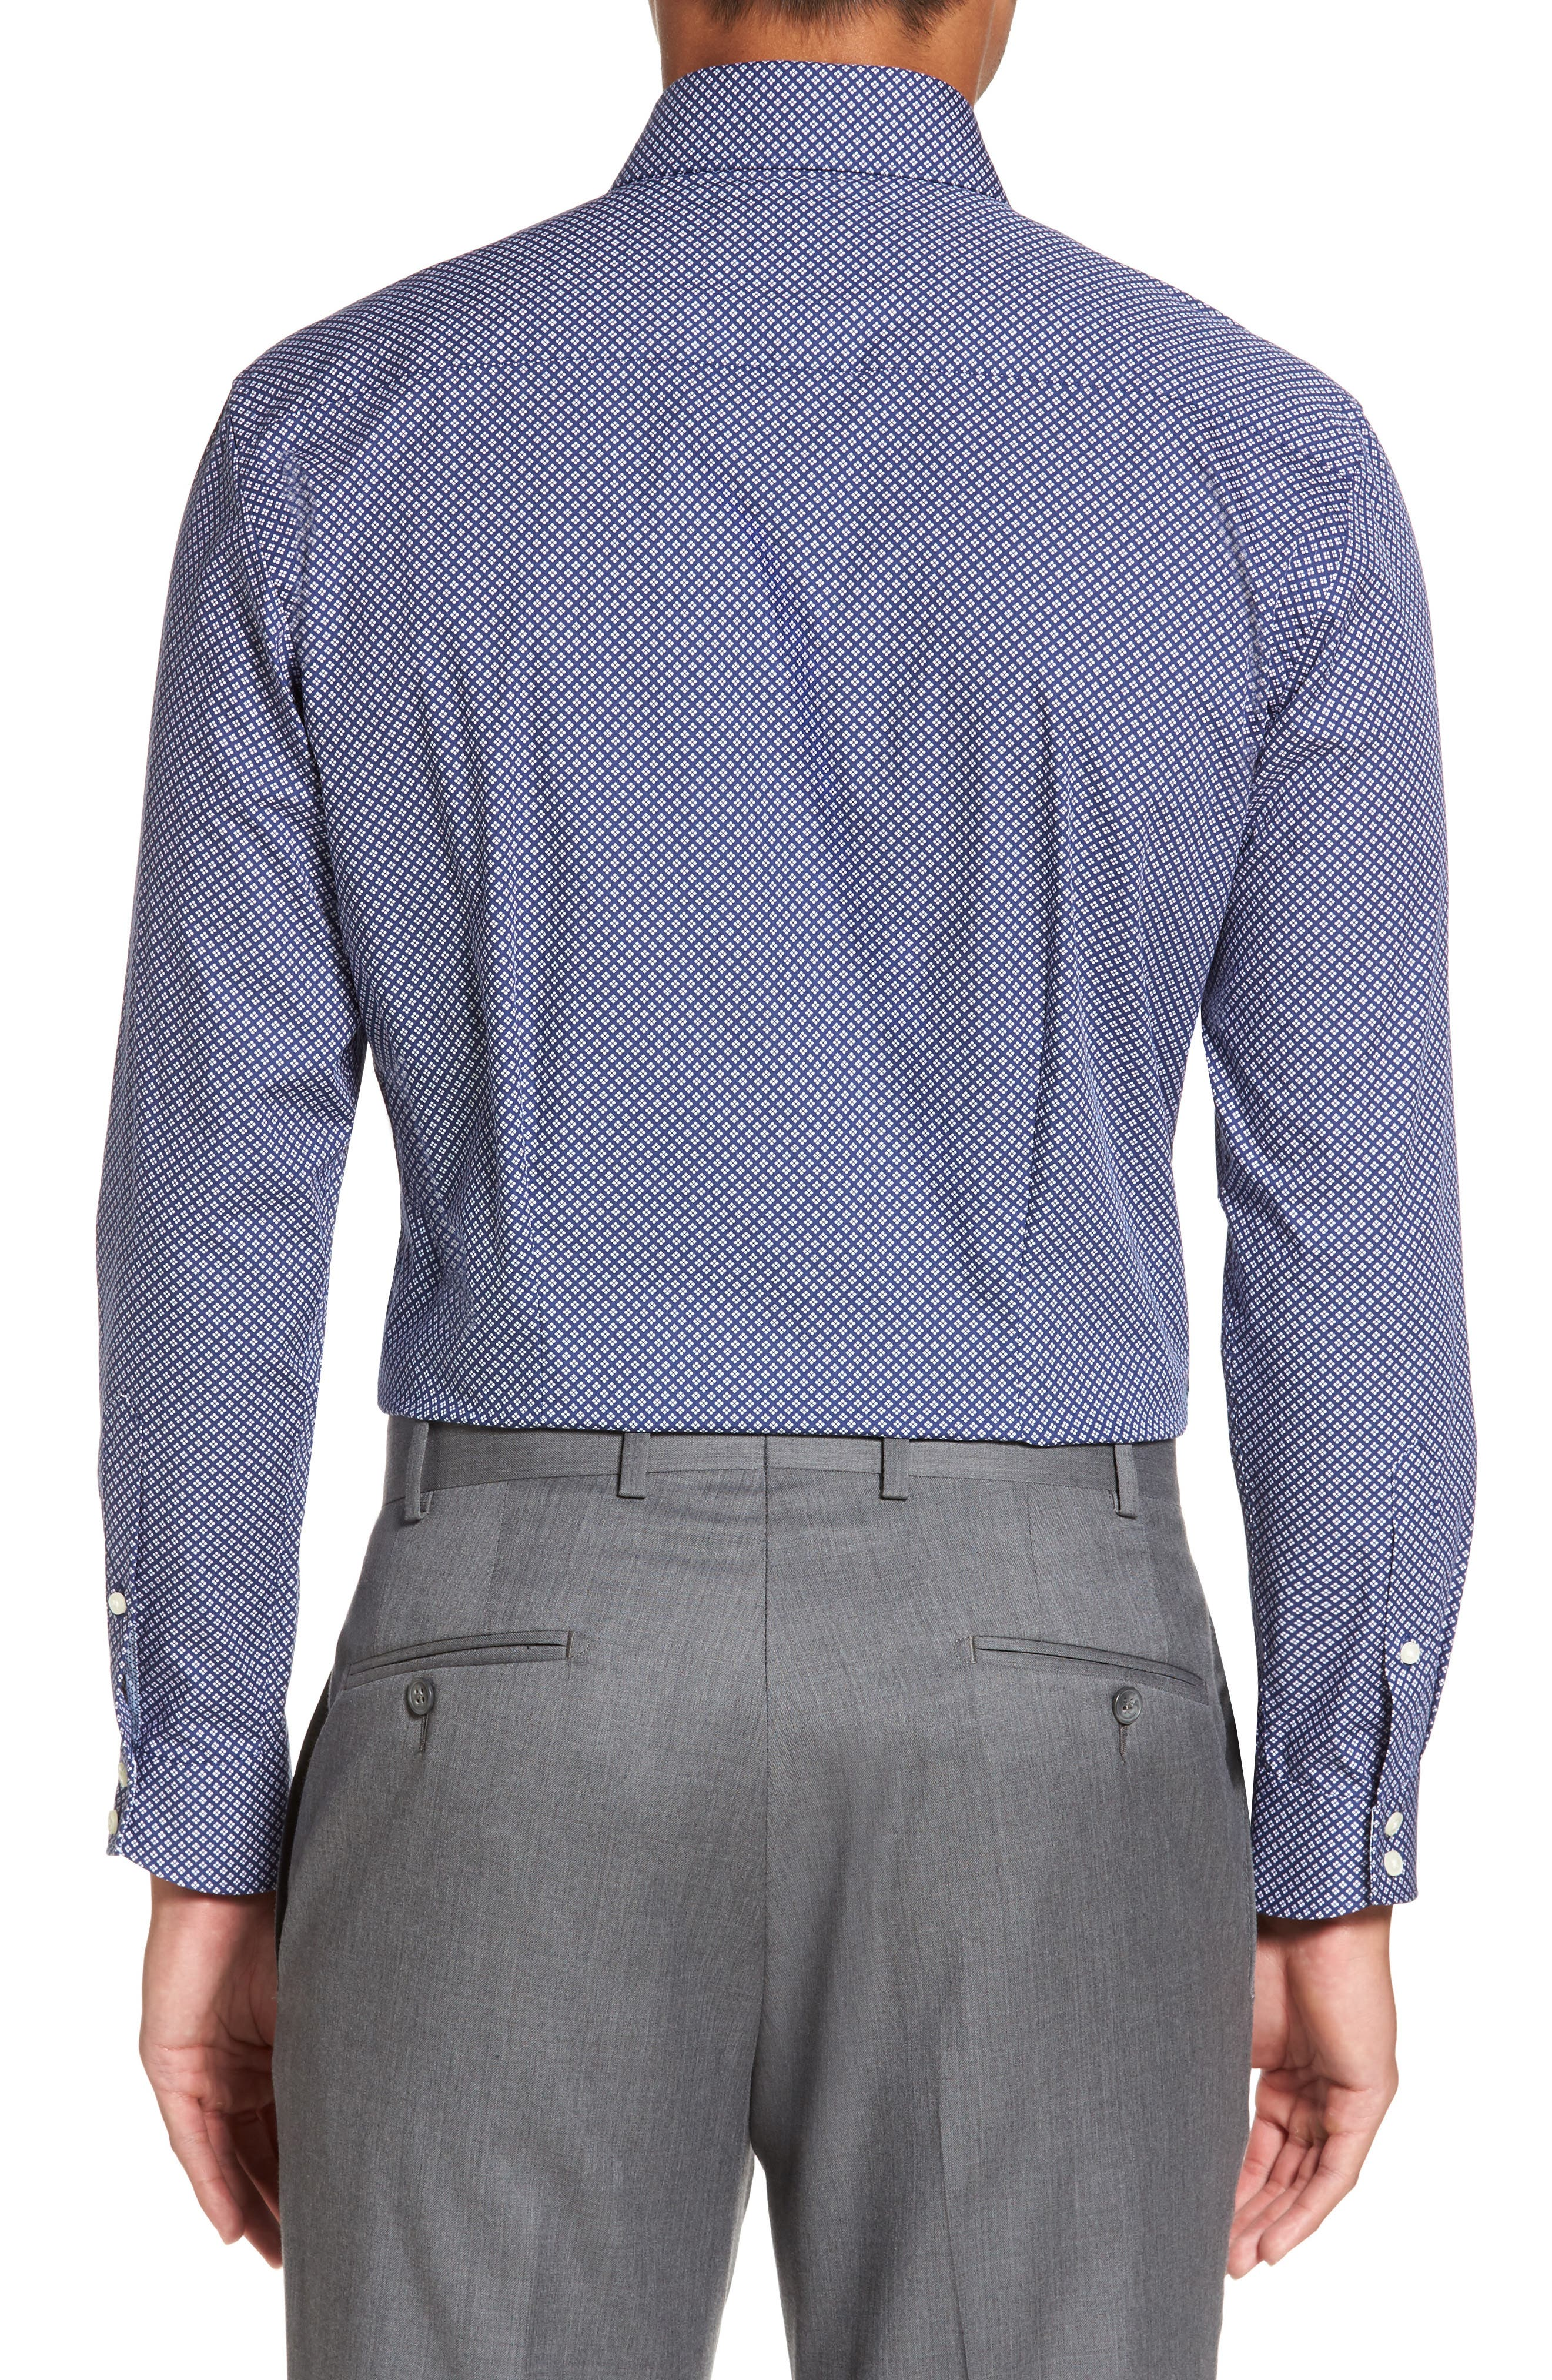 Agra Trim Fit Geometric Dress Shirt,                             Alternate thumbnail 2, color,                             410